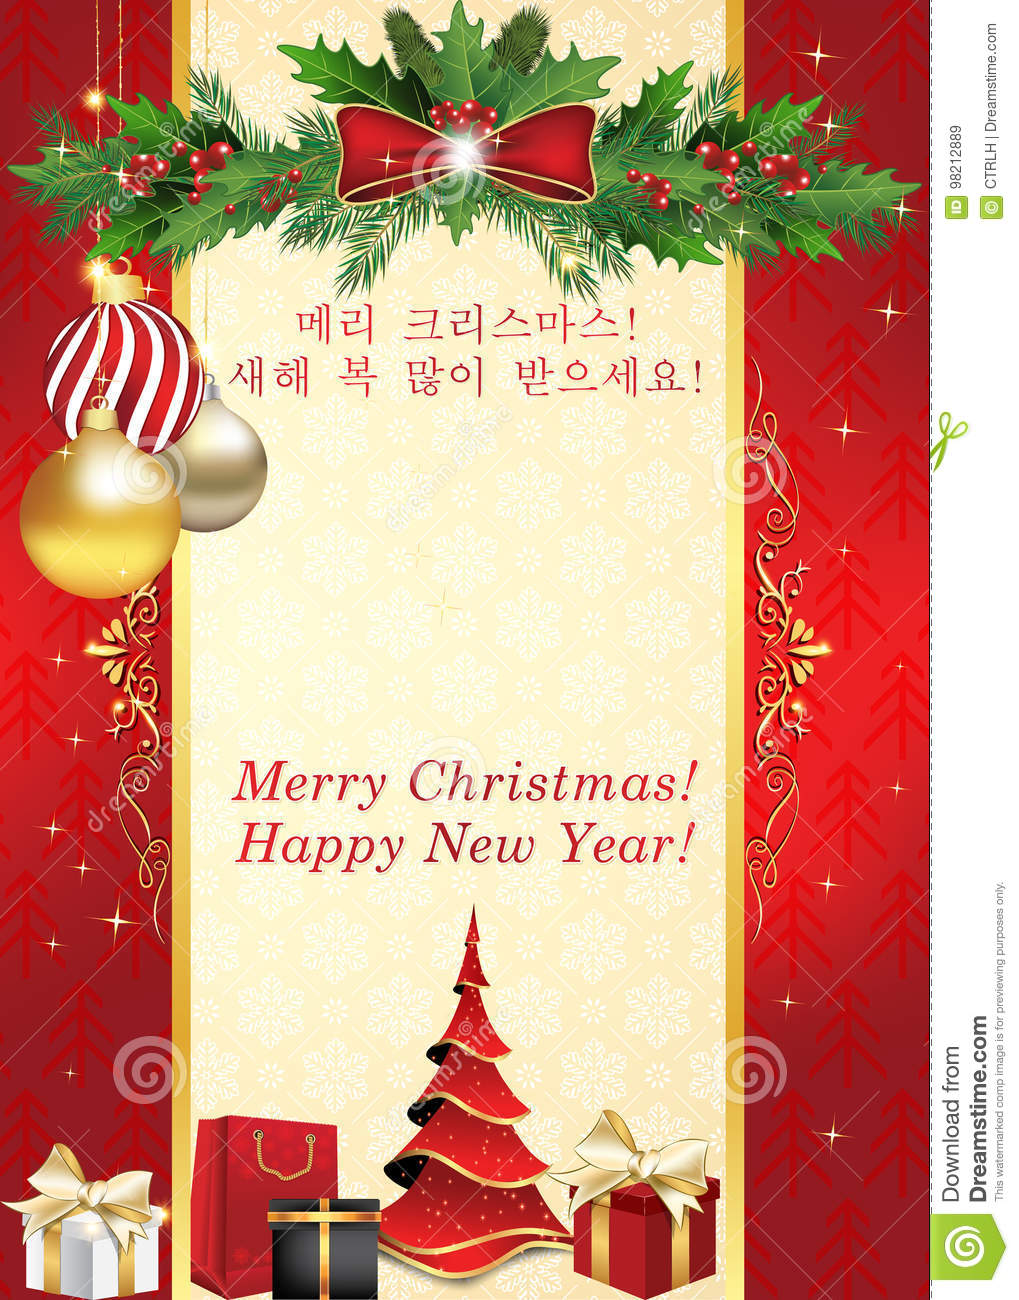 Korean greeting card for christmas and new year stock illustration korean greeting card for christmas and new year stock illustration illustration of korea wishes 98212889 m4hsunfo